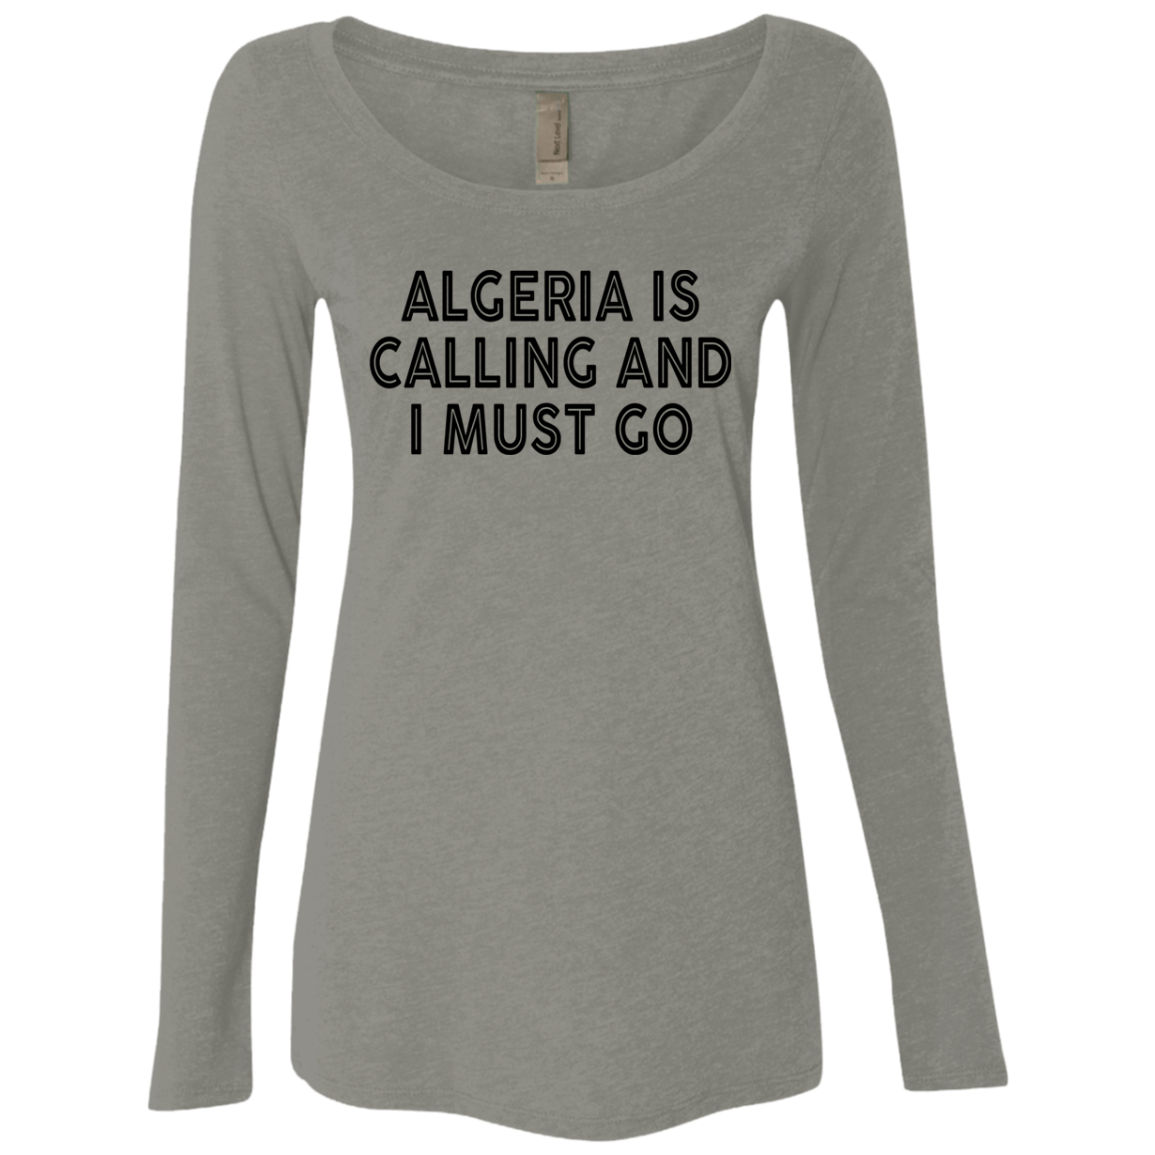 Algeria Is Calling And I Must Go Women's Long Sleeve Tee